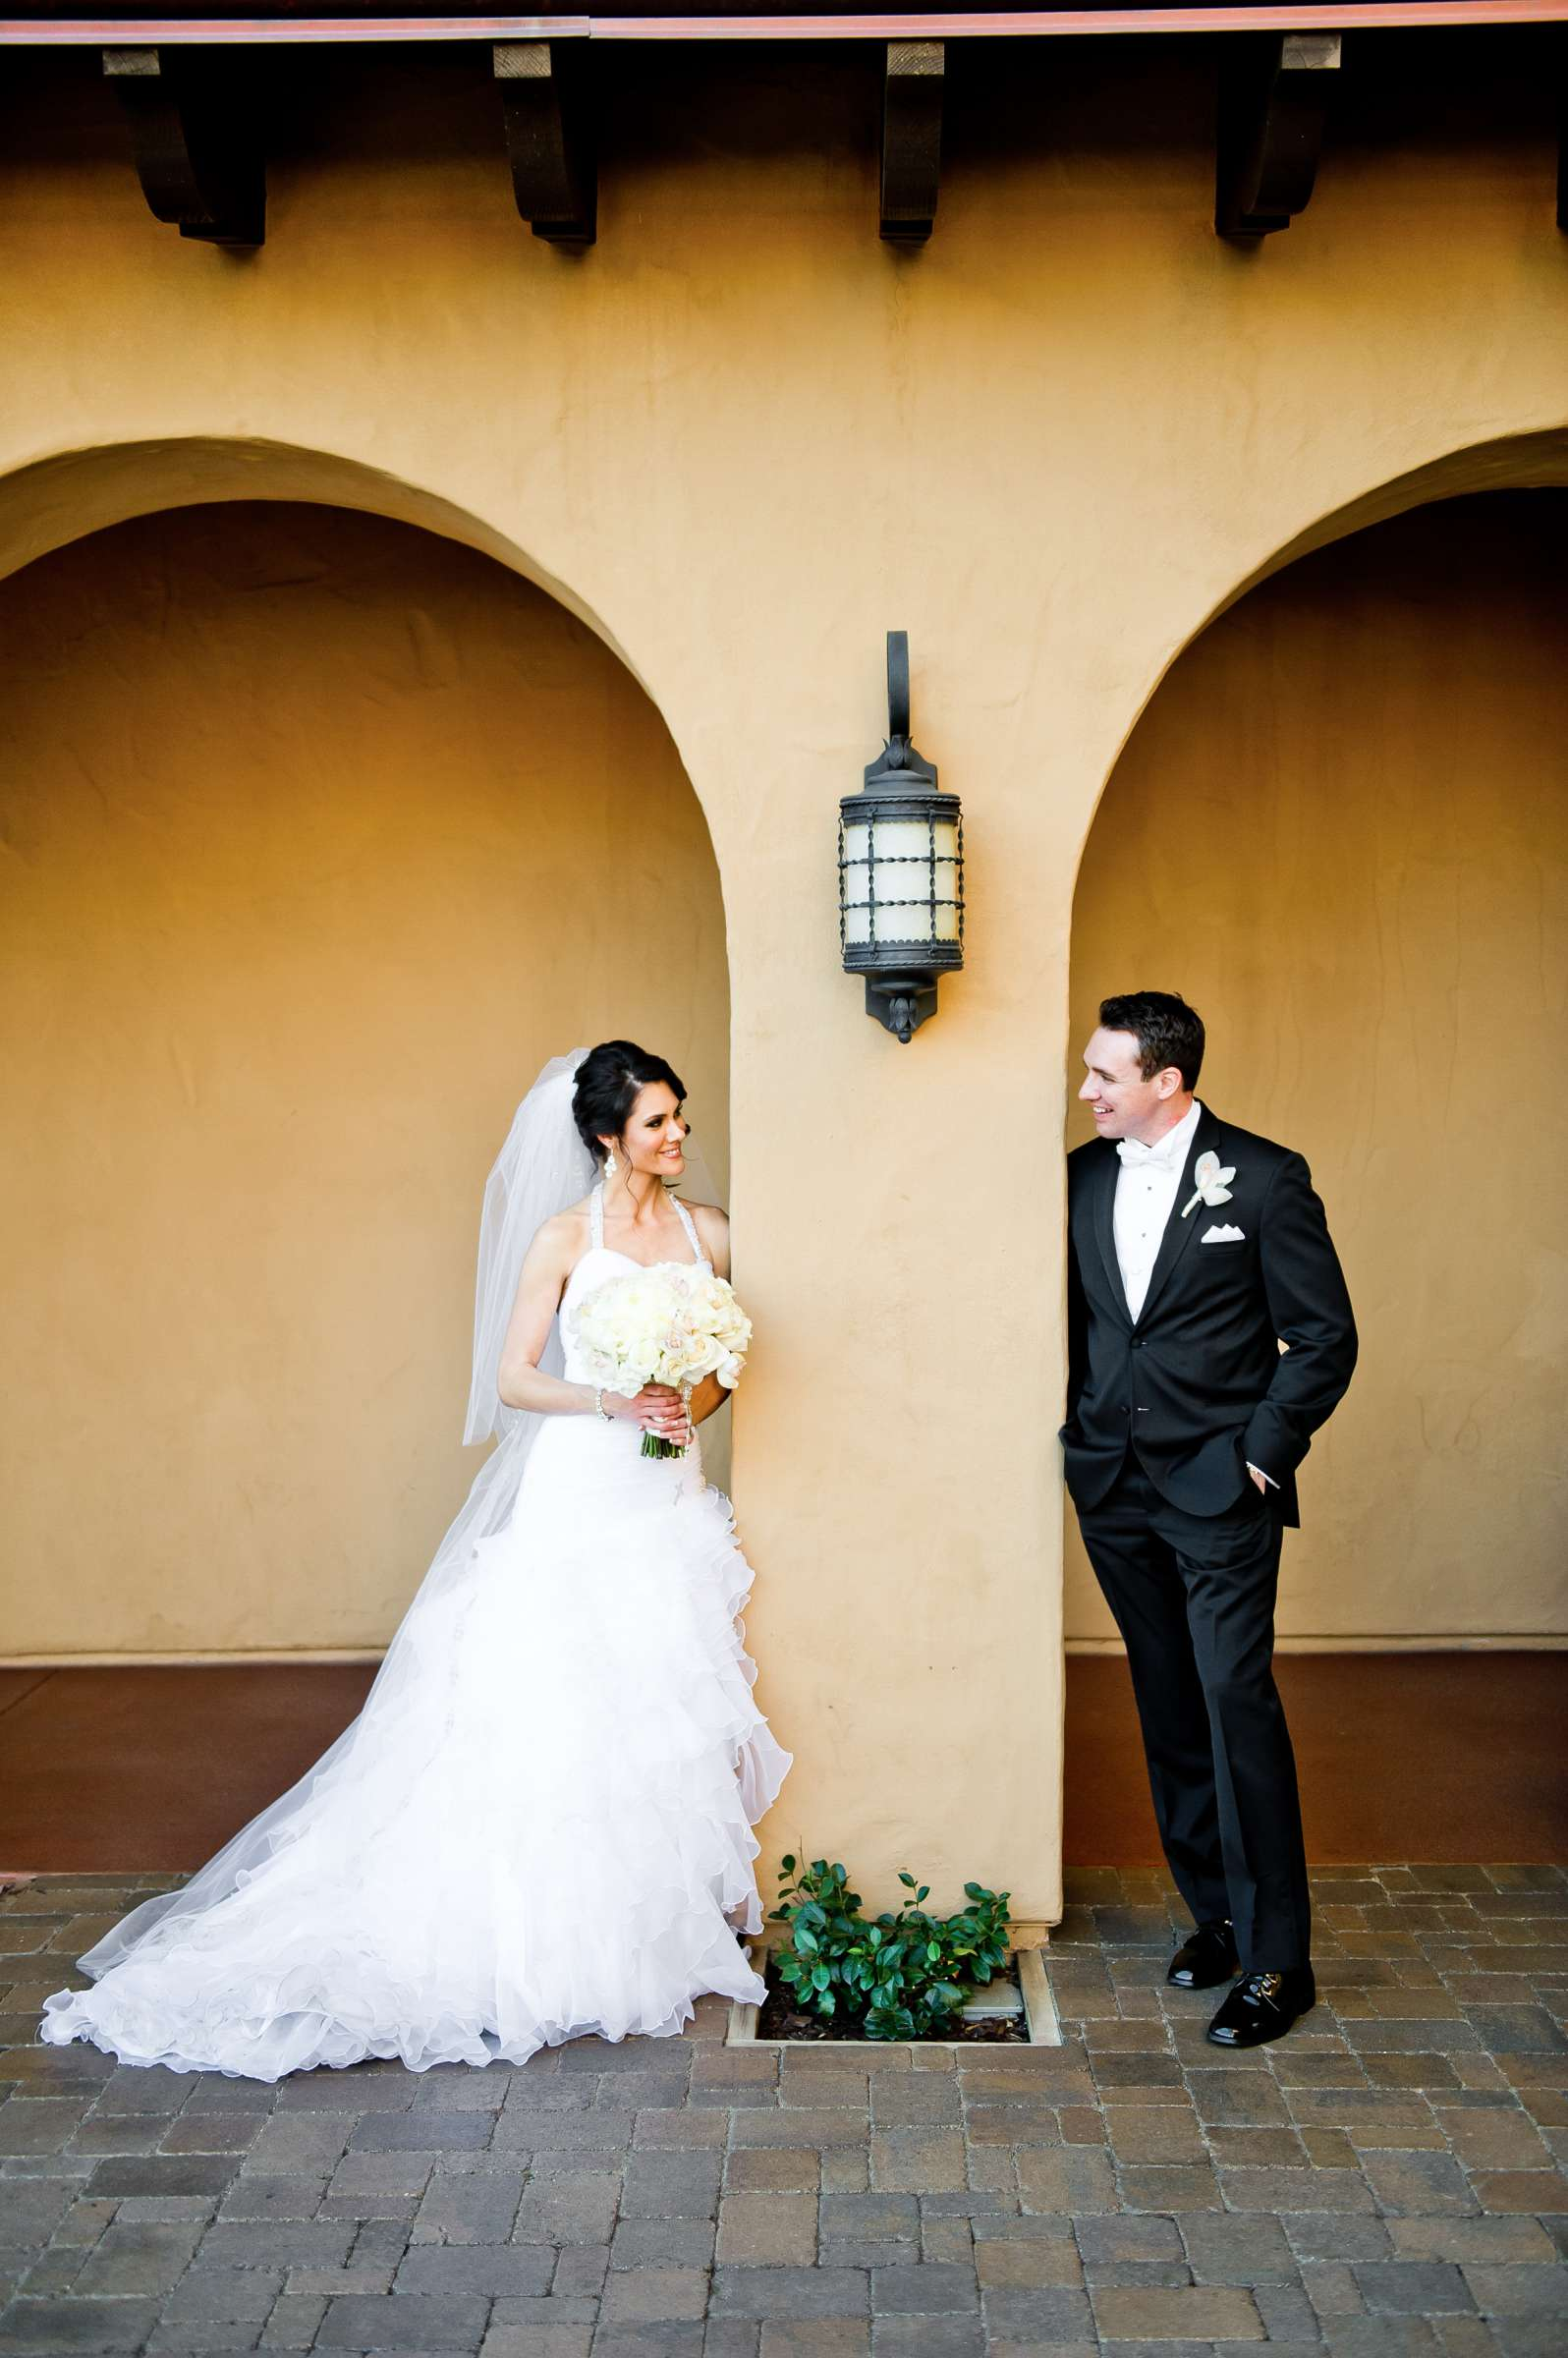 Fairmont Grand Del Mar Wedding, Angela and Tom Wedding Photo #11 by True Photography